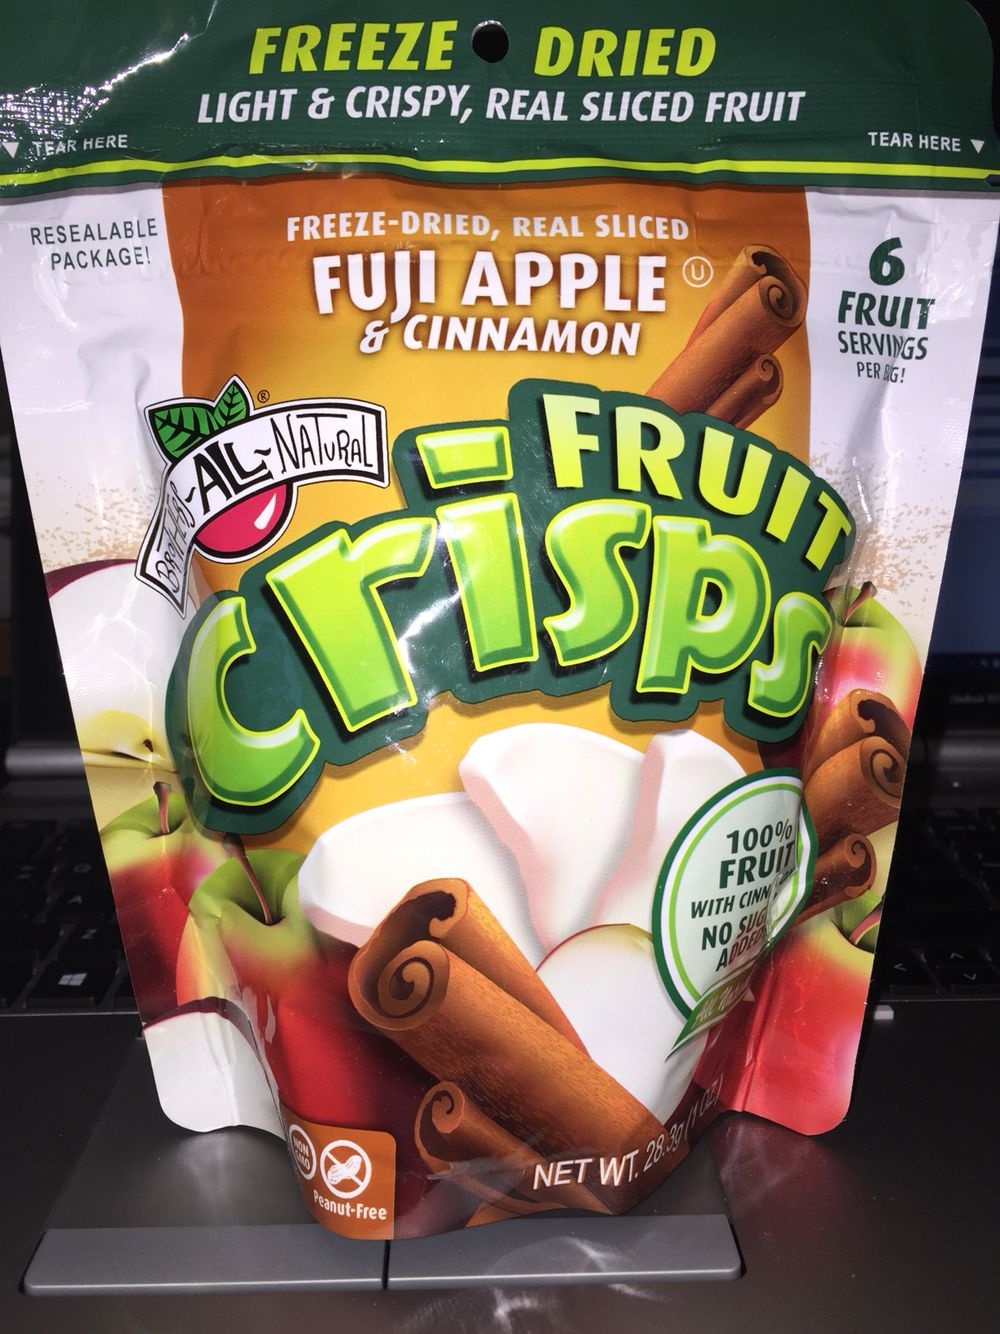 Brothers all natural fruit crisps Fuji apple & cinnamon